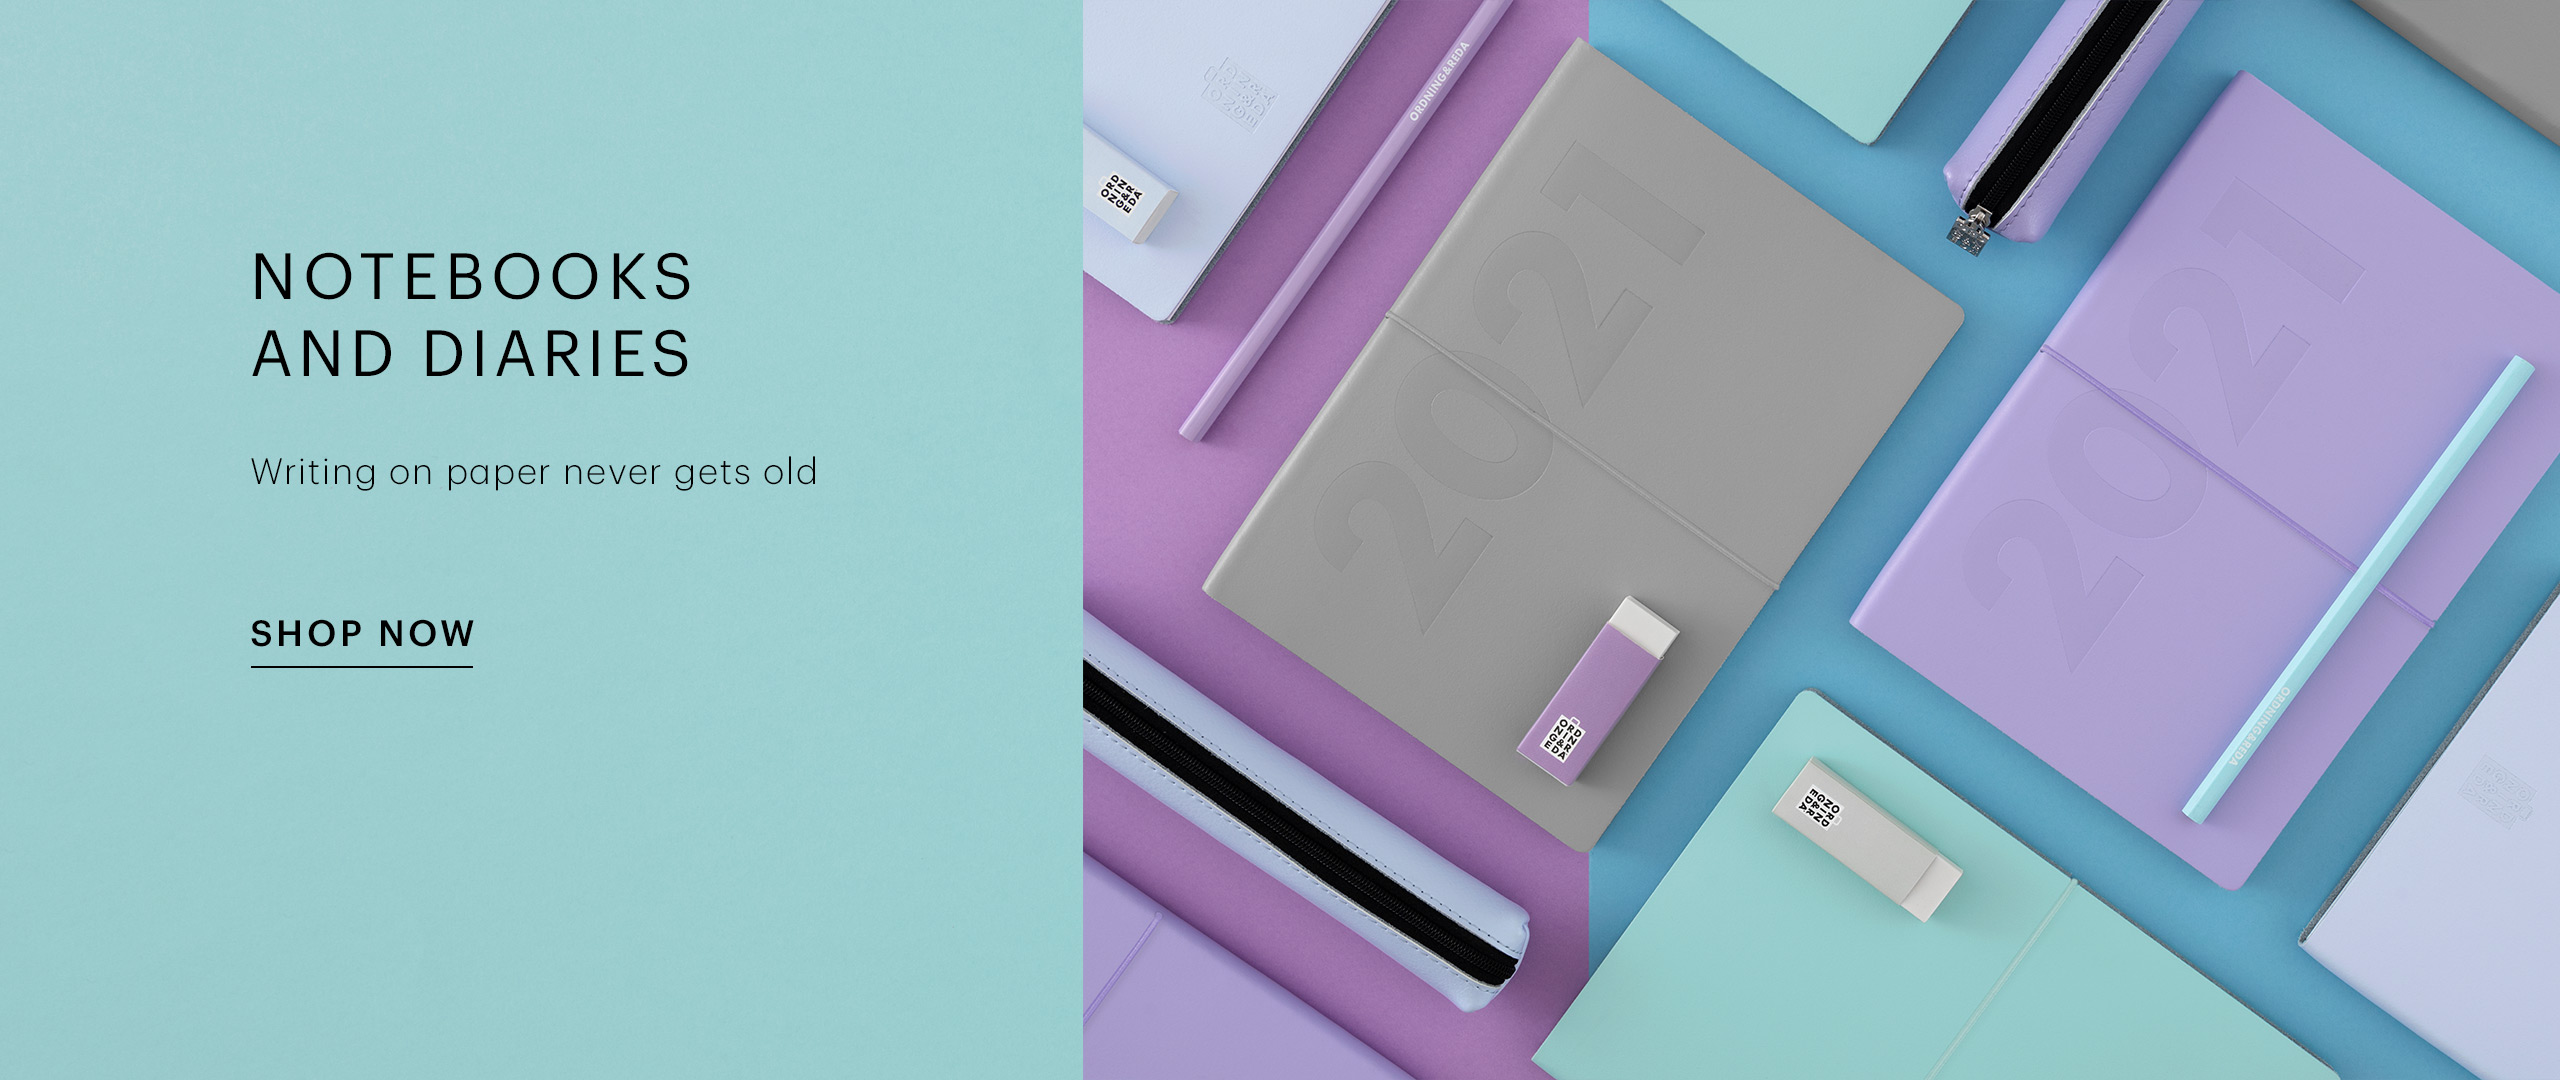 [OR] - Notebooks and Diaries EN